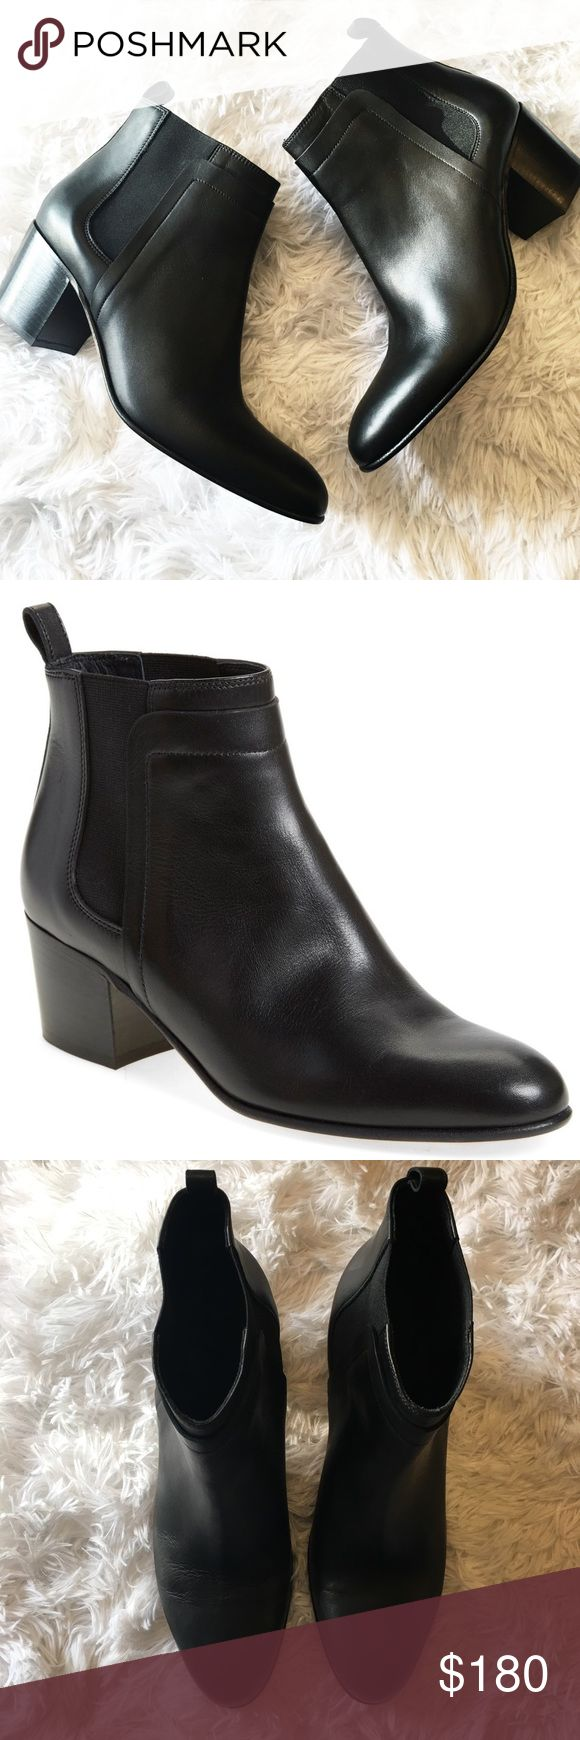 New Vince Hallie Black Leather Ankle Boots So chic and perfectly on trend! Brand new without box. Size 10/40. Elastic panel. Pull on tab. No trades!! 042517400nrt Vince Shoes Ankle Boots & Booties